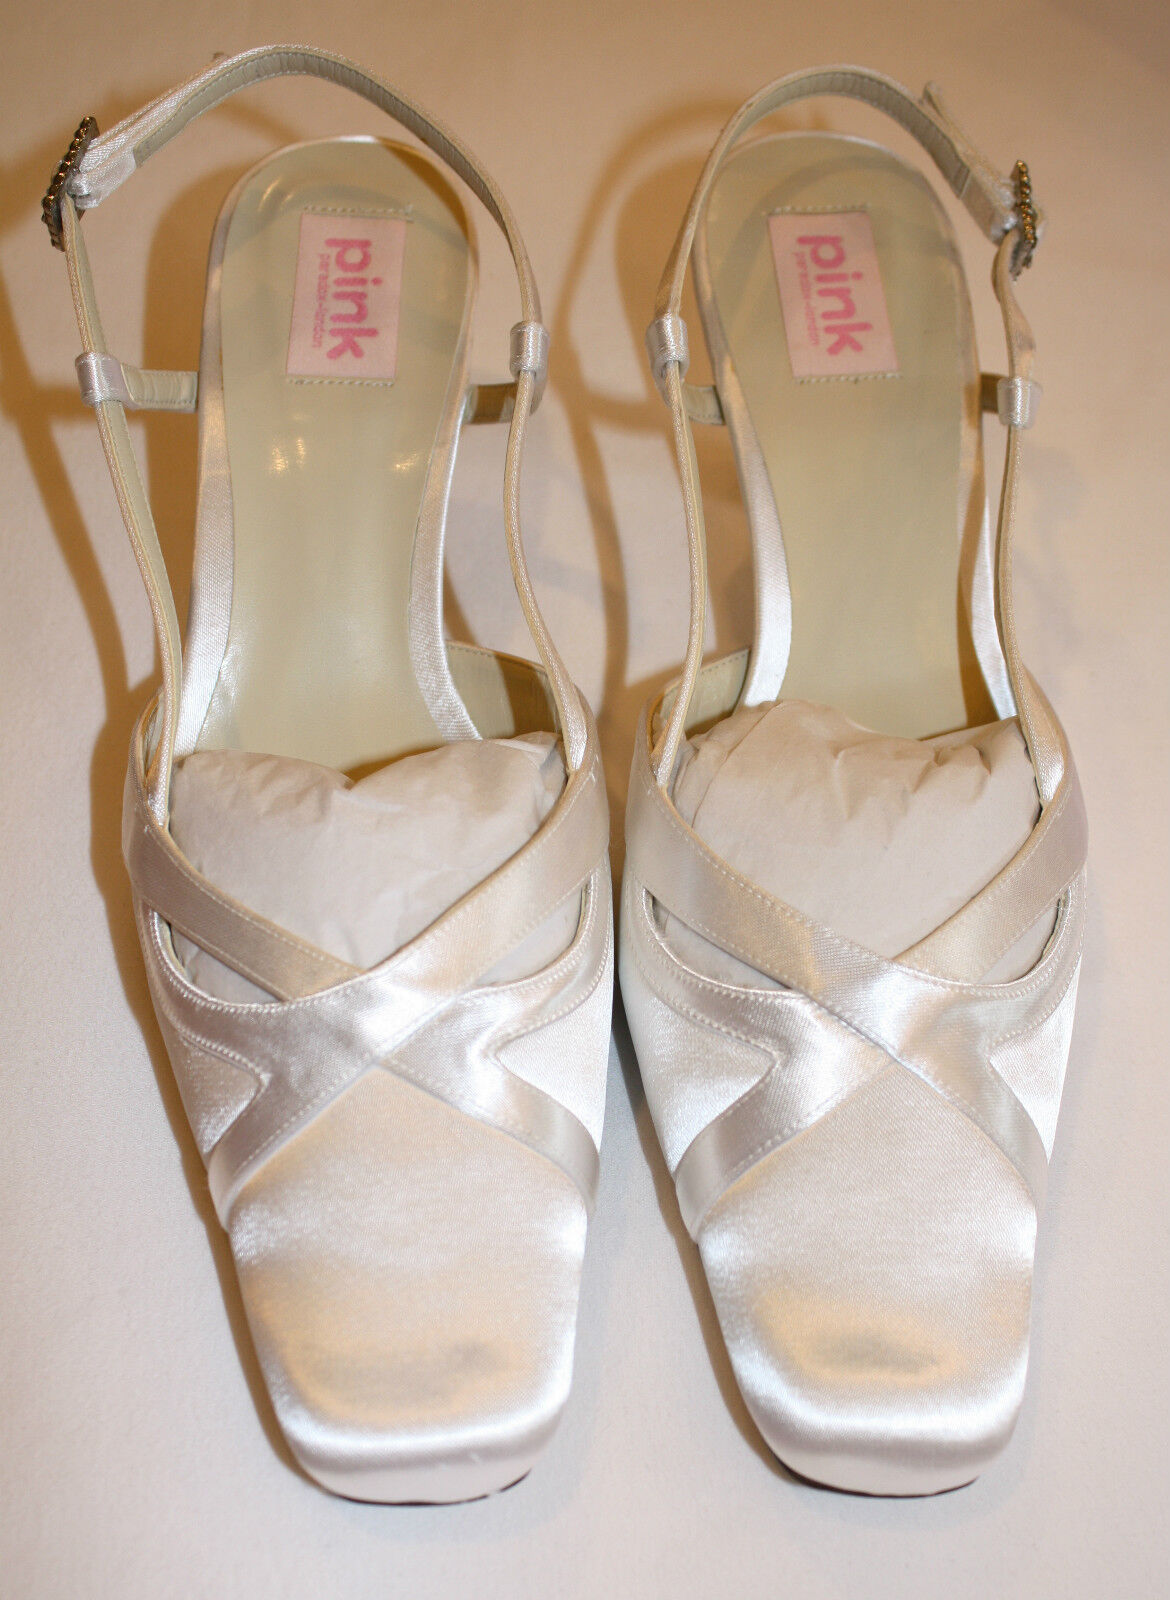 White Paradox Satin Shoes by Pink Paradox White with Rhinestones at Buckle - Size 7 1/2 eab33a